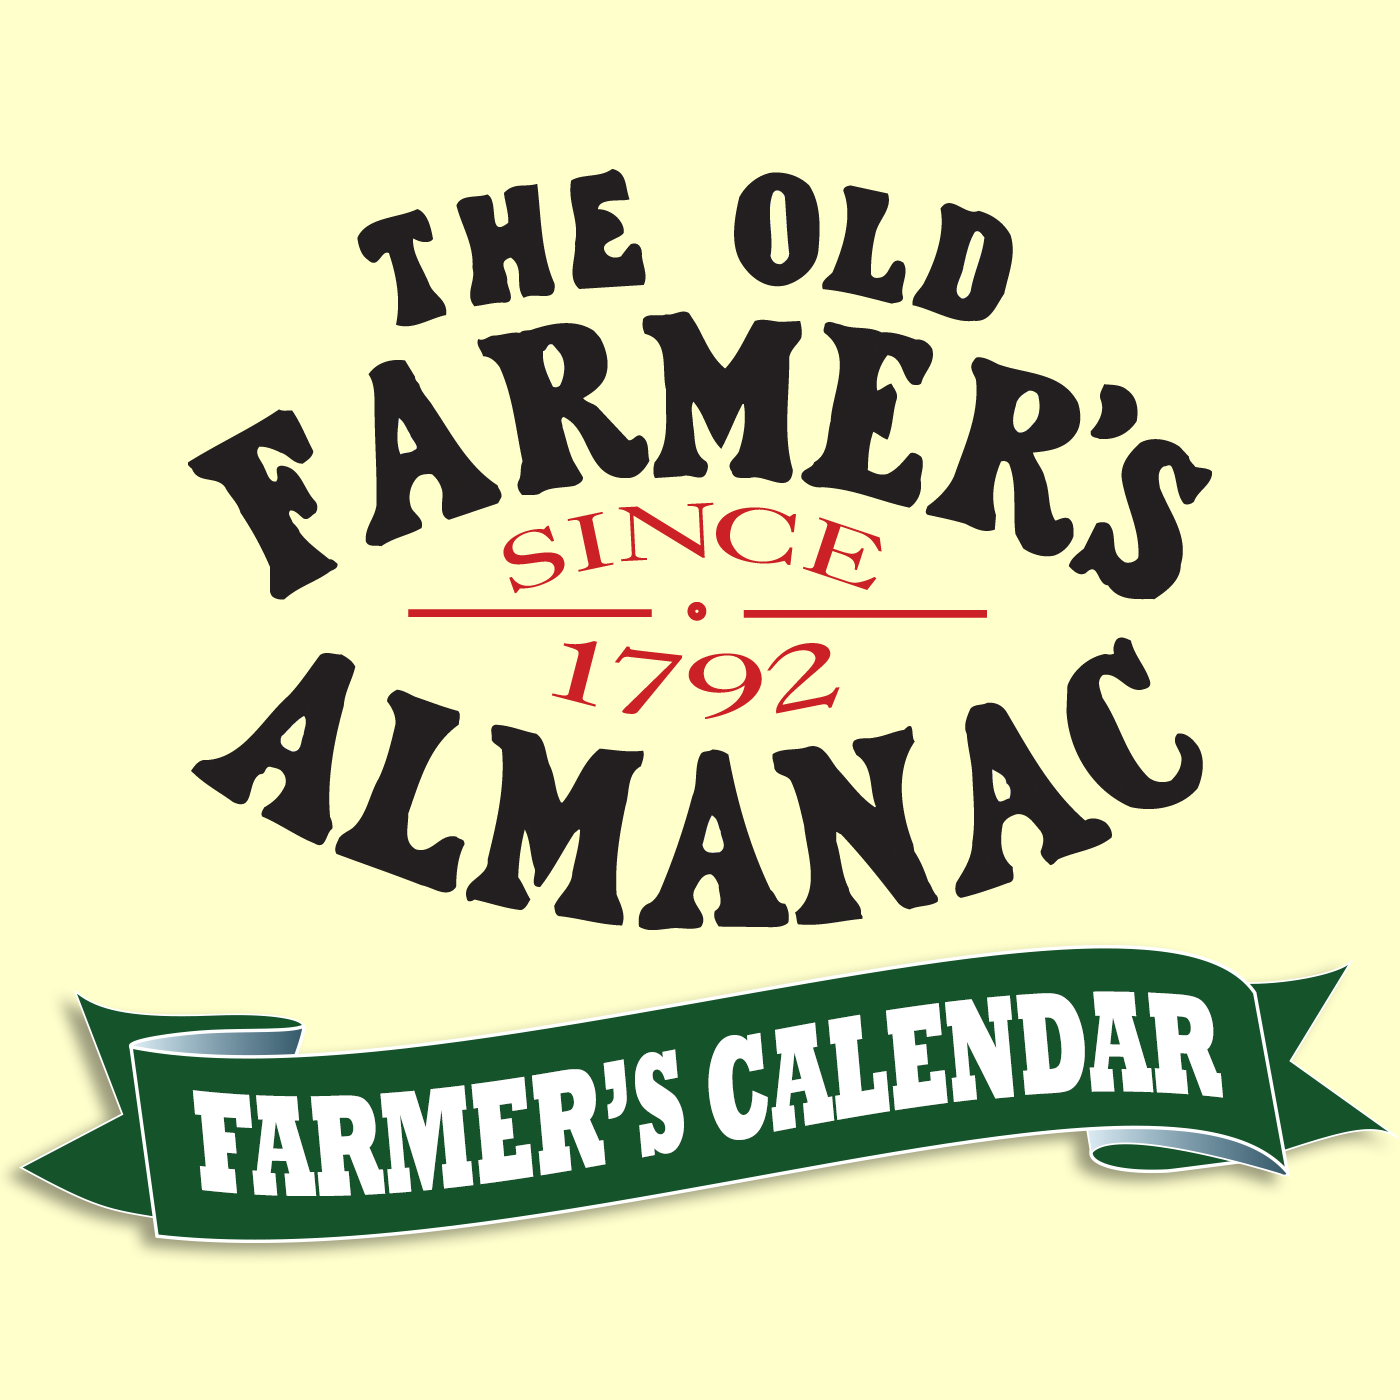 The Old Farmer's Almanac Farmers Calendar